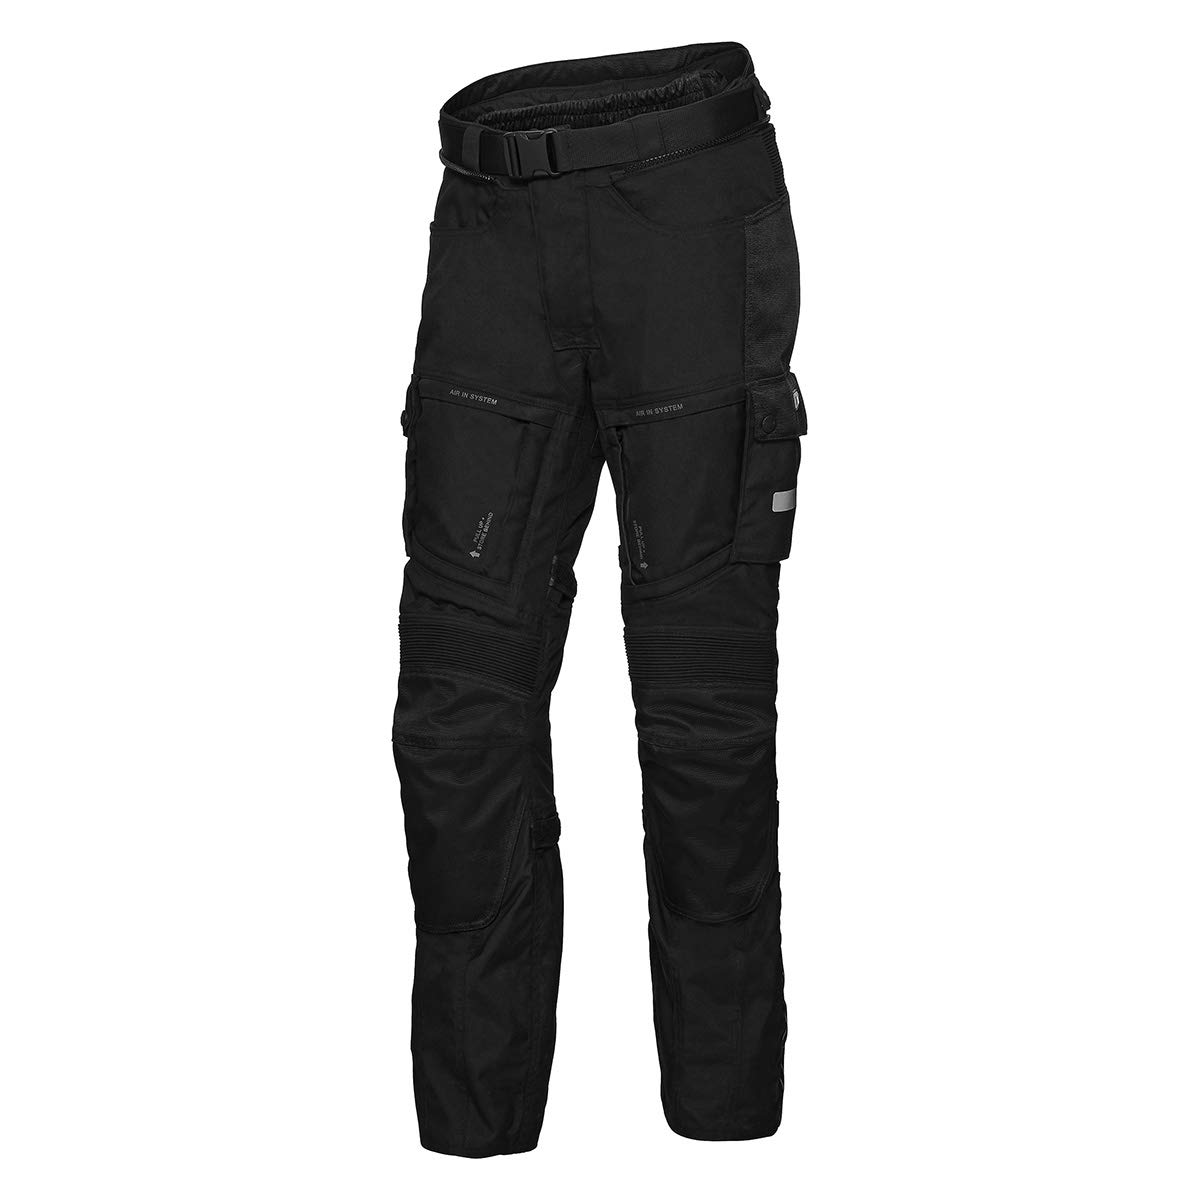 IXS Tour Lt Trousers Montevideo-St Black M von IXS